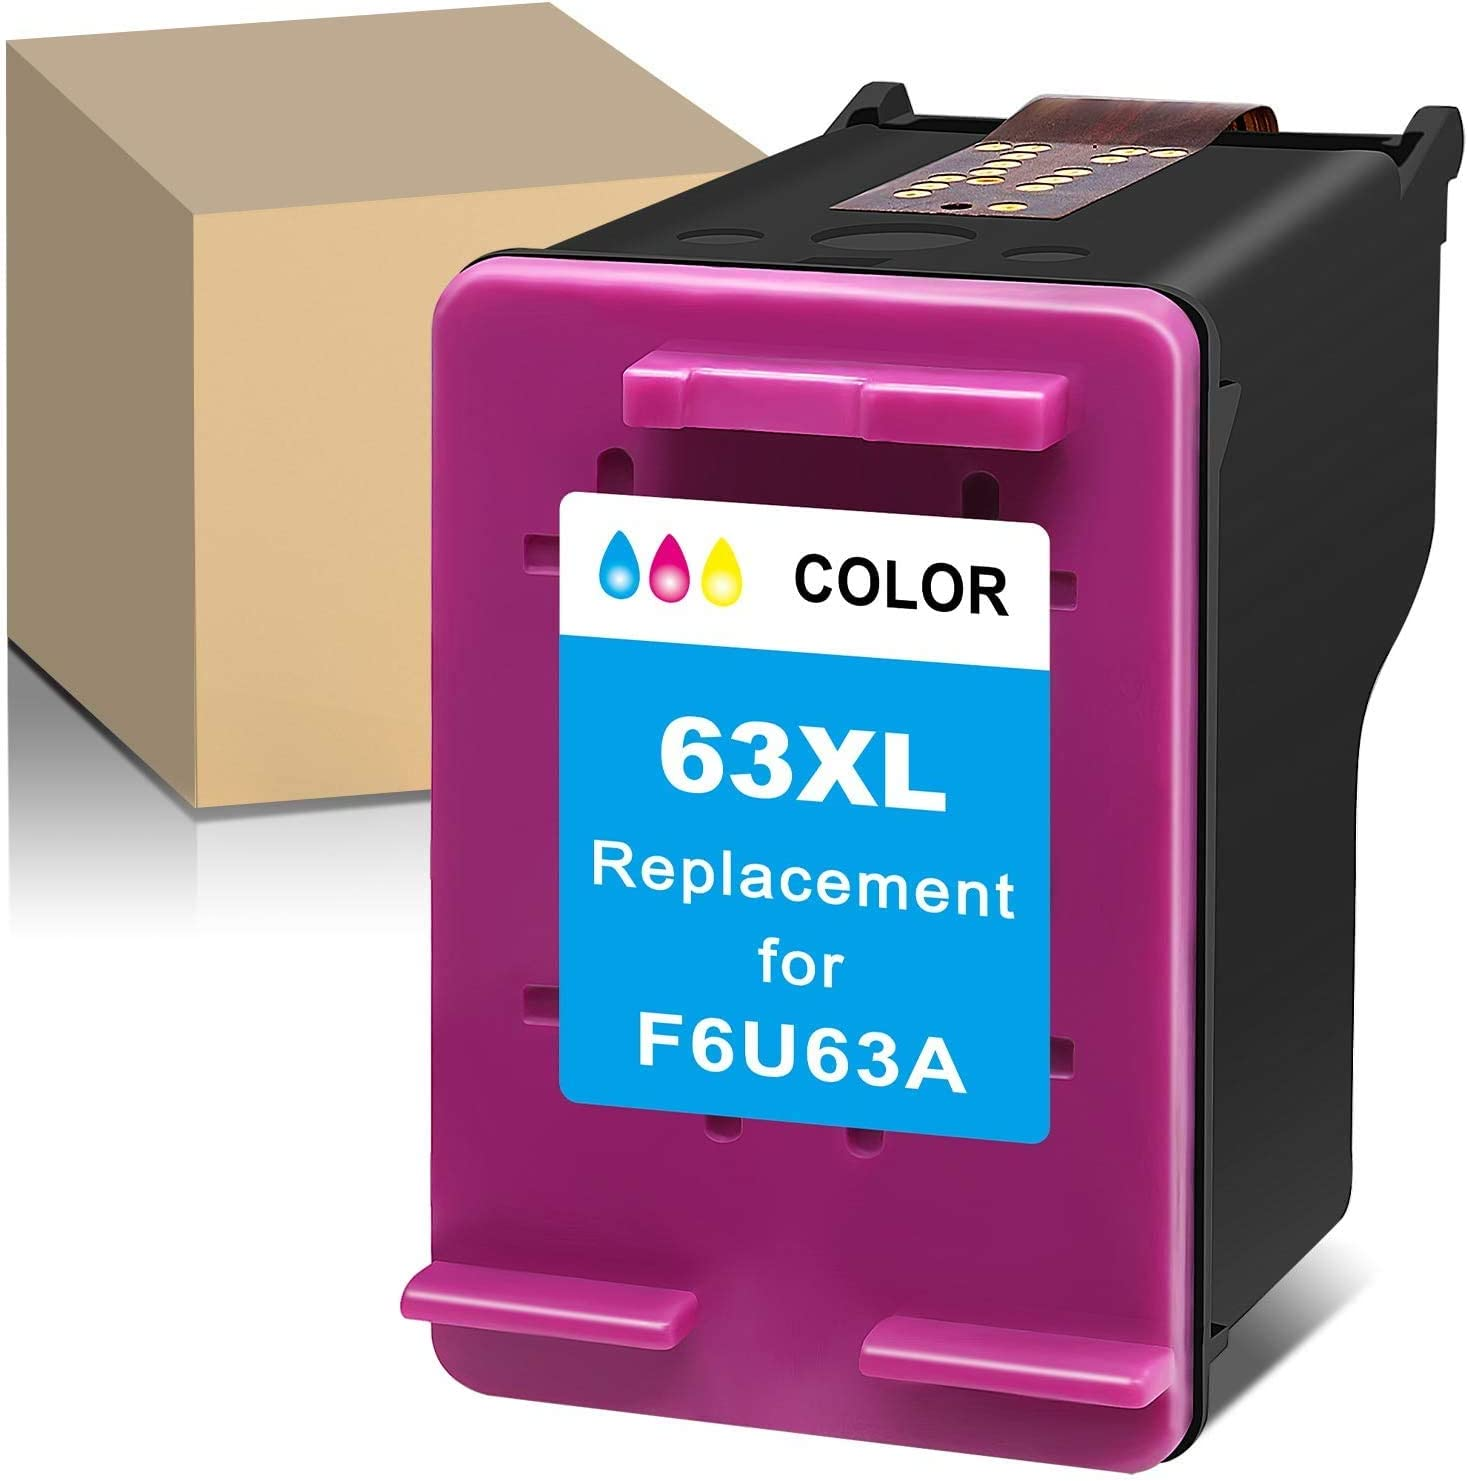 MaxPage Remanufactured Ink Cartridge Replacement for HP 63XL 63 XL Tri-Color to Use with Envy 4520 3634 OfficeJet 3830 5252 4650 5258 4655 4652 5255 DeskJet 3636 1111 3630 1112 3637 3632, 1-Pack